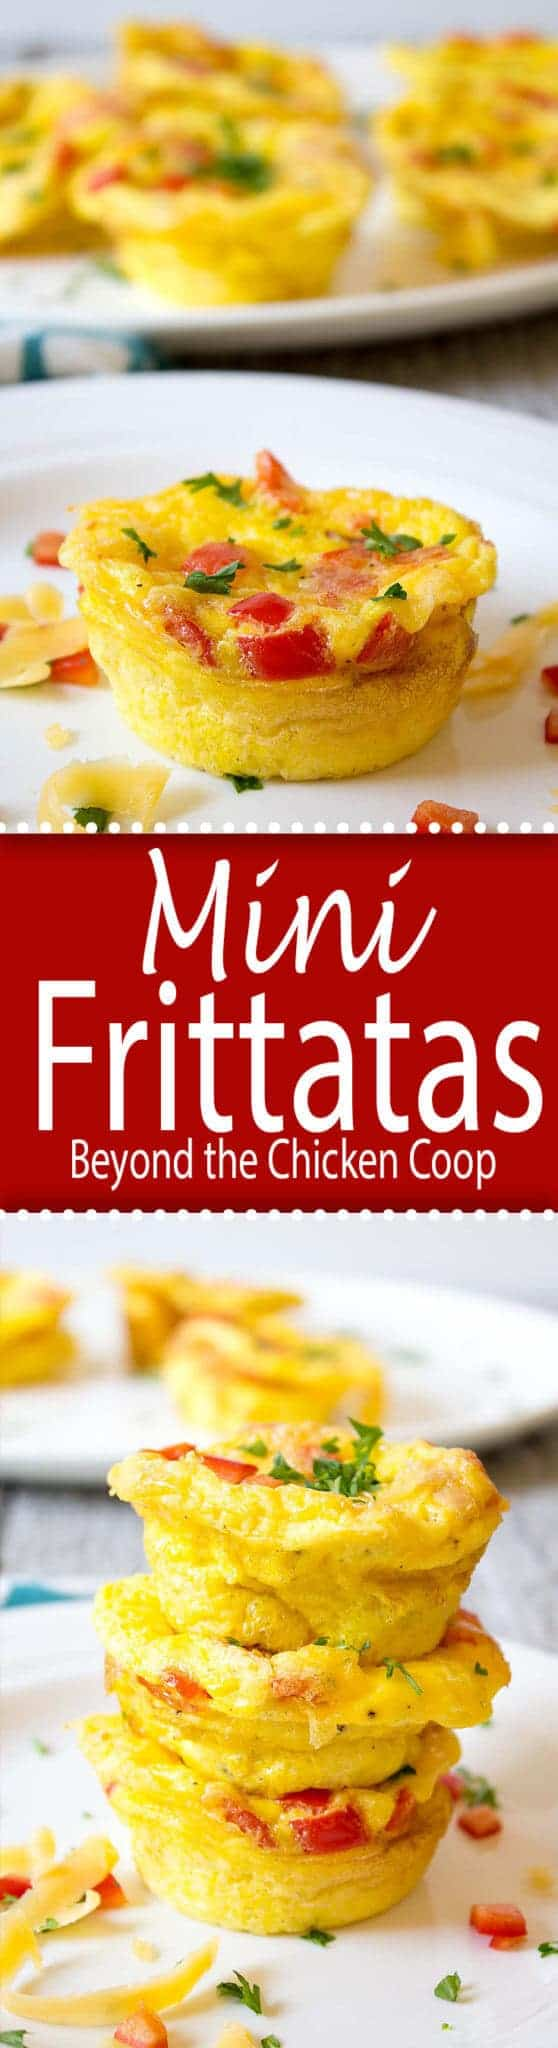 Mini Frittatas are perfect for breakfast and for making ahead of time and reheating when you are ready to eat. beyondthechickencoop.com